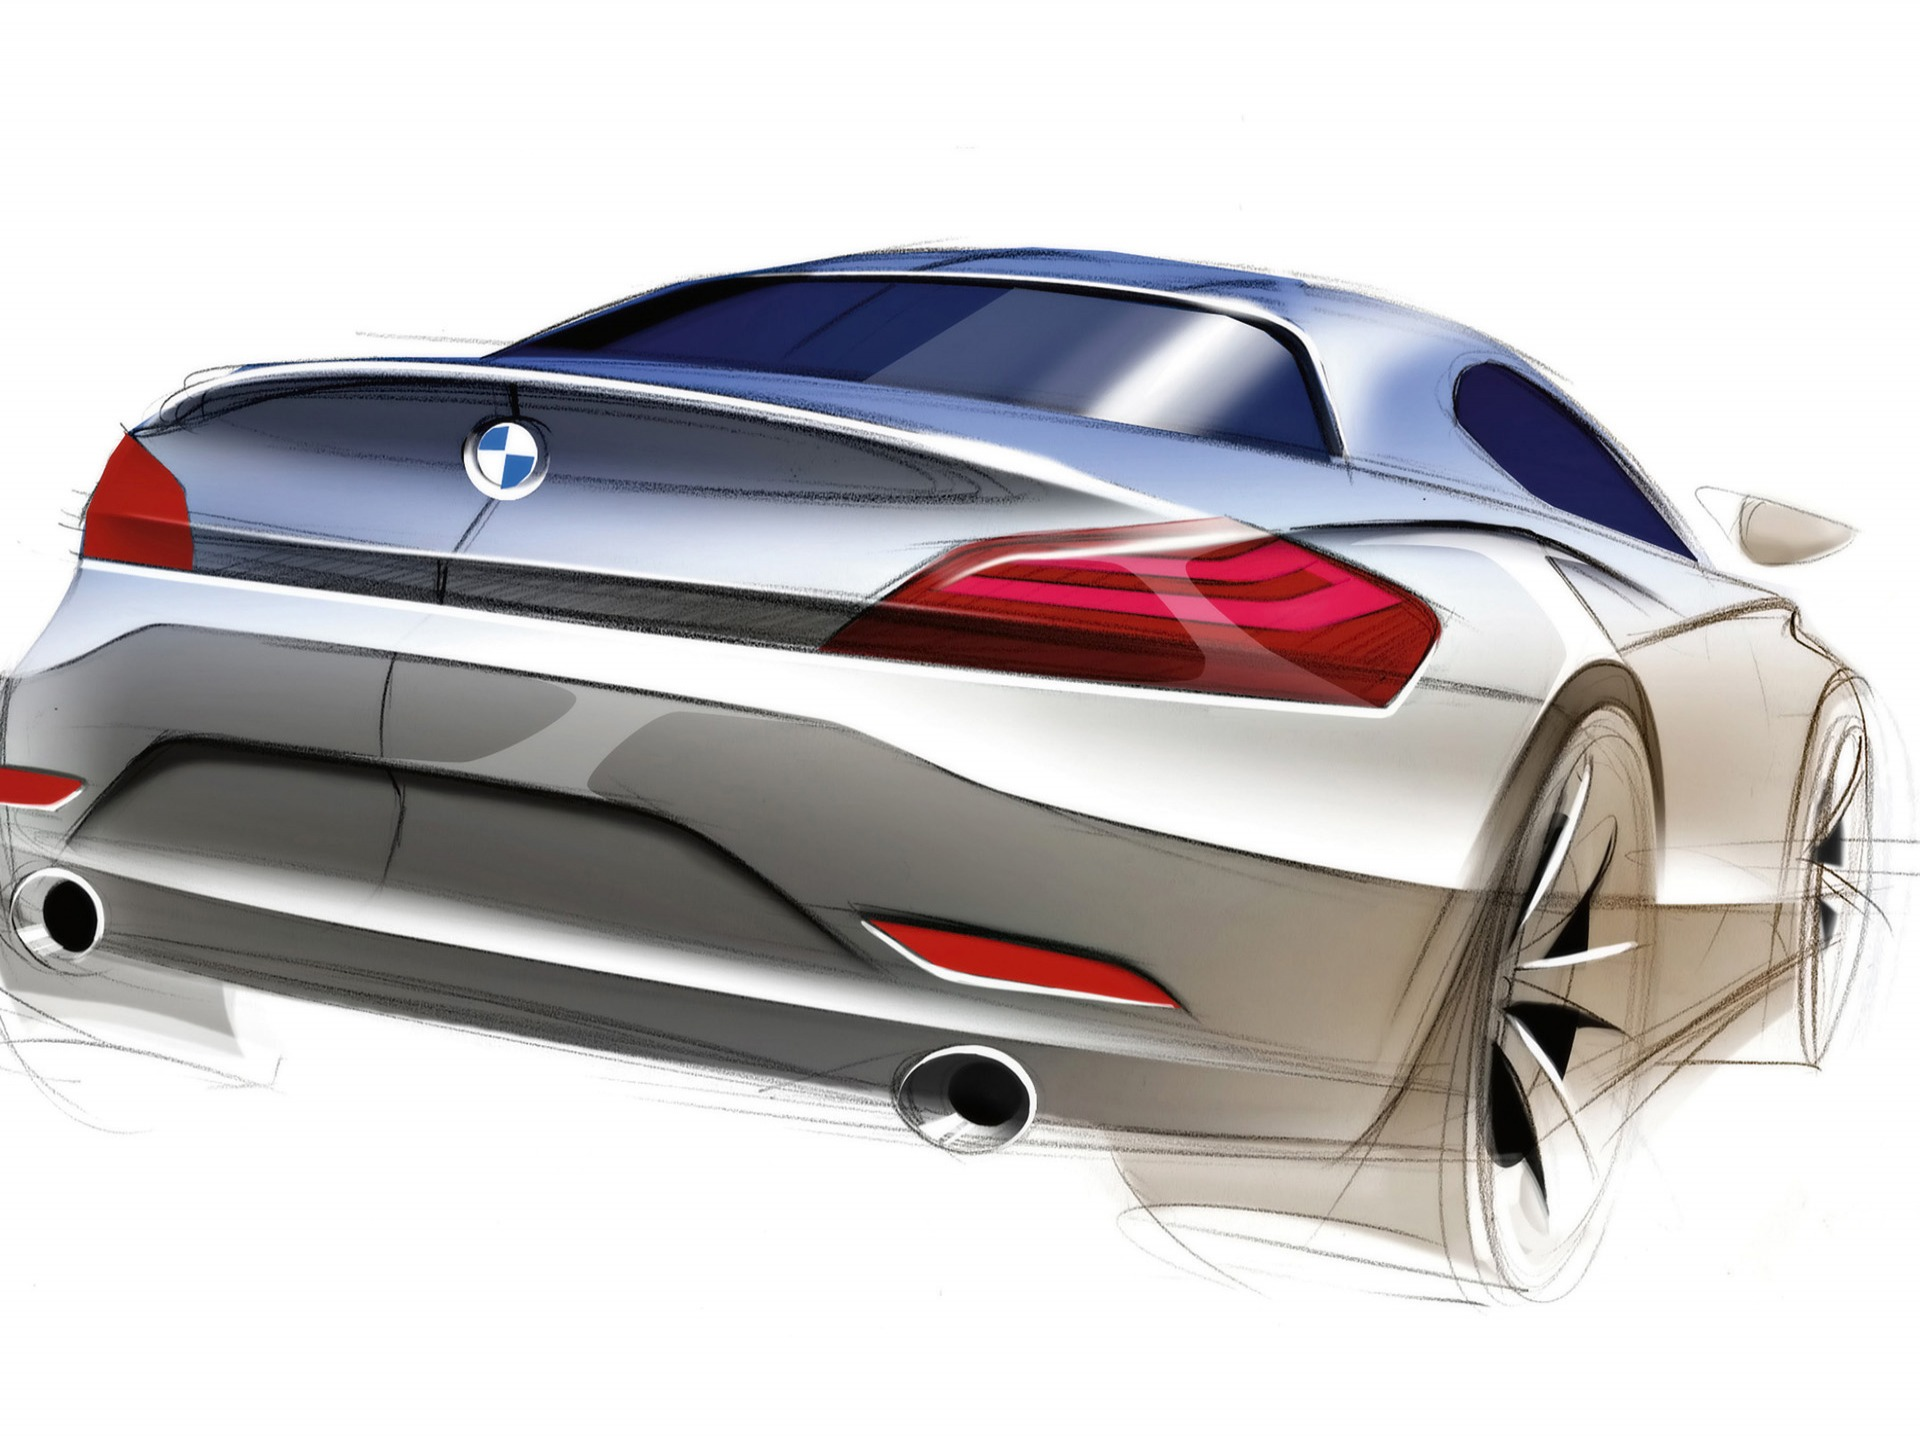 Bmw Z4 Roadster Sketch Wallpaper Bmw Cars Wallpapers In